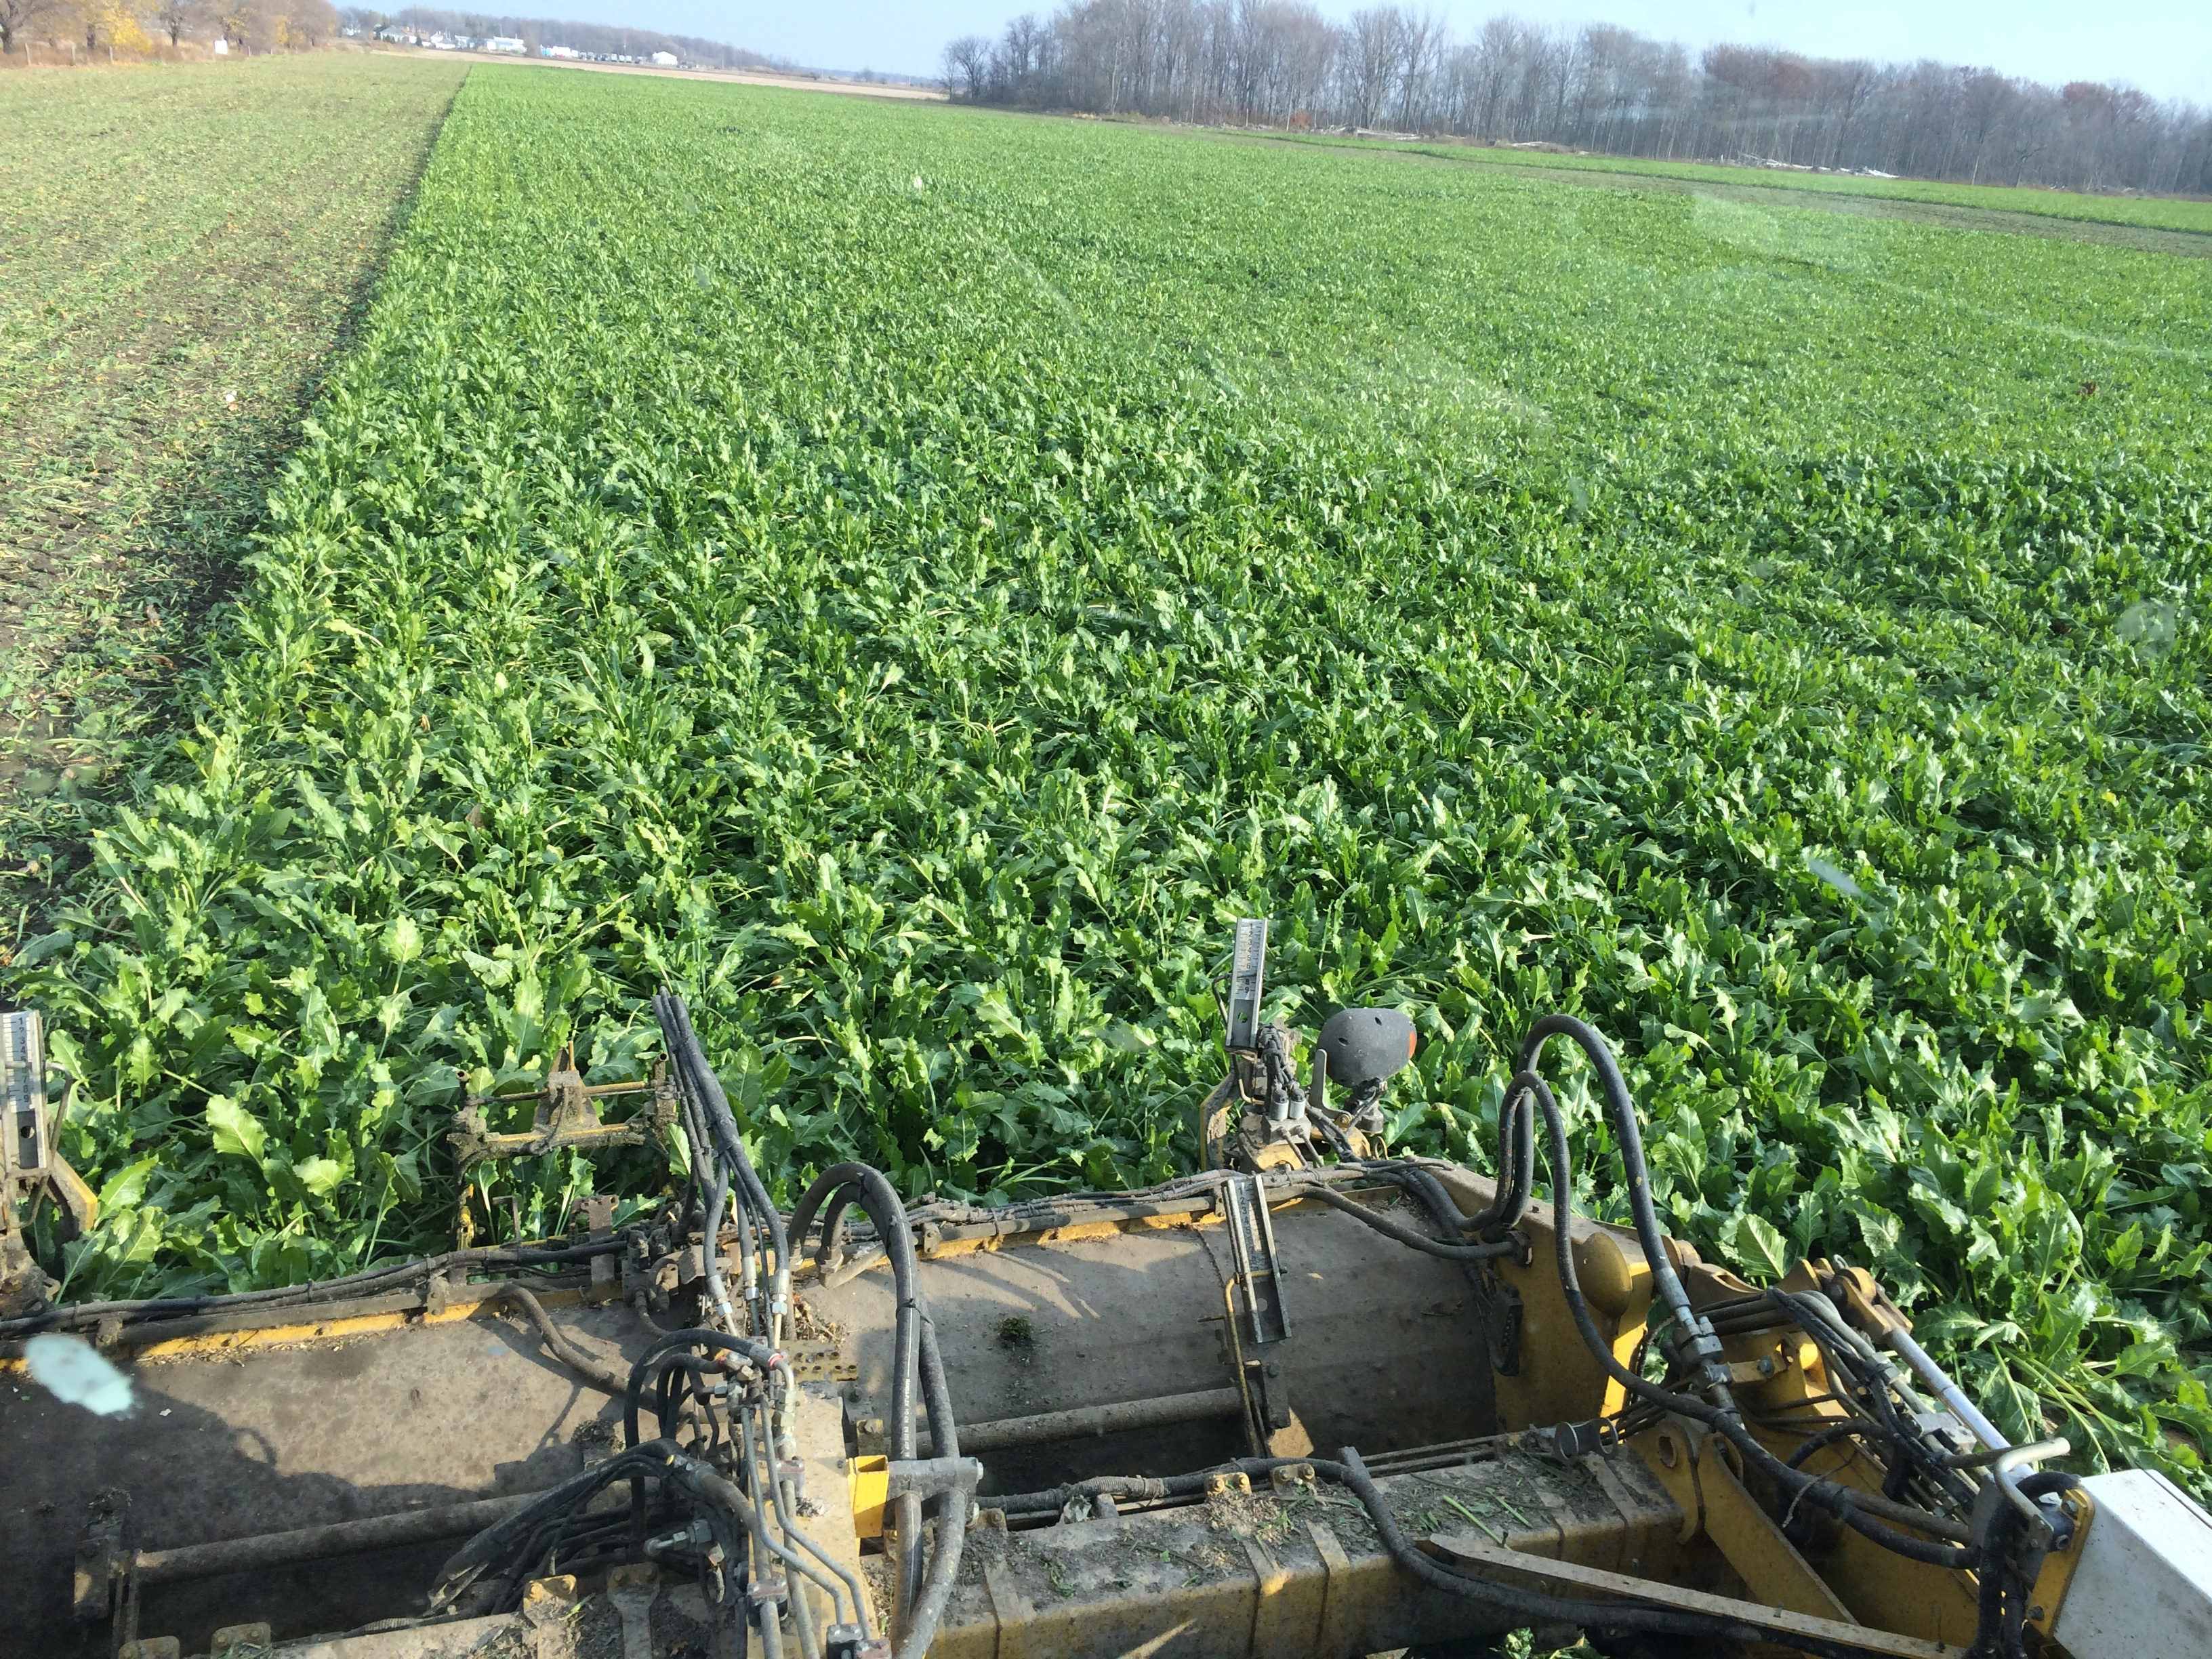 Sugarbeets November 2014